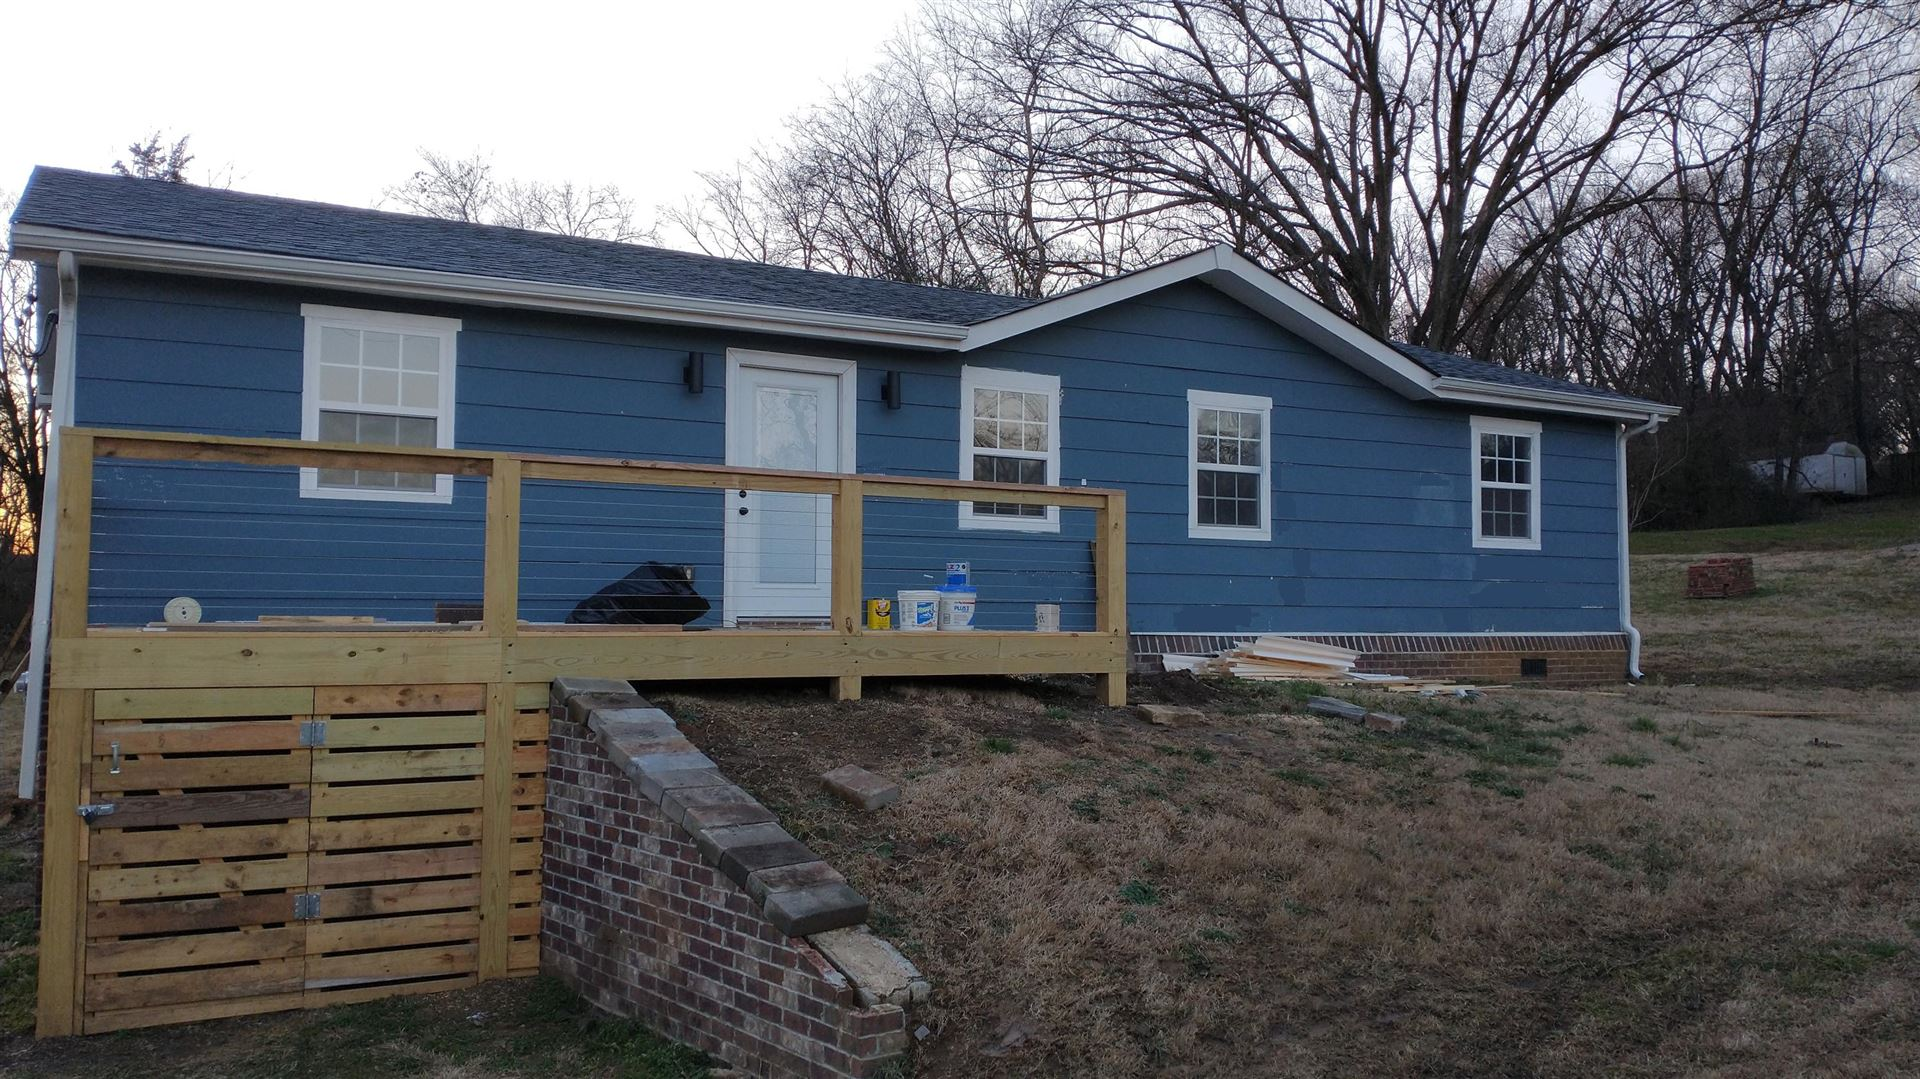 Photo of 2315 Birdsong St, Knoxville, TN 37915 (MLS # 1140892)